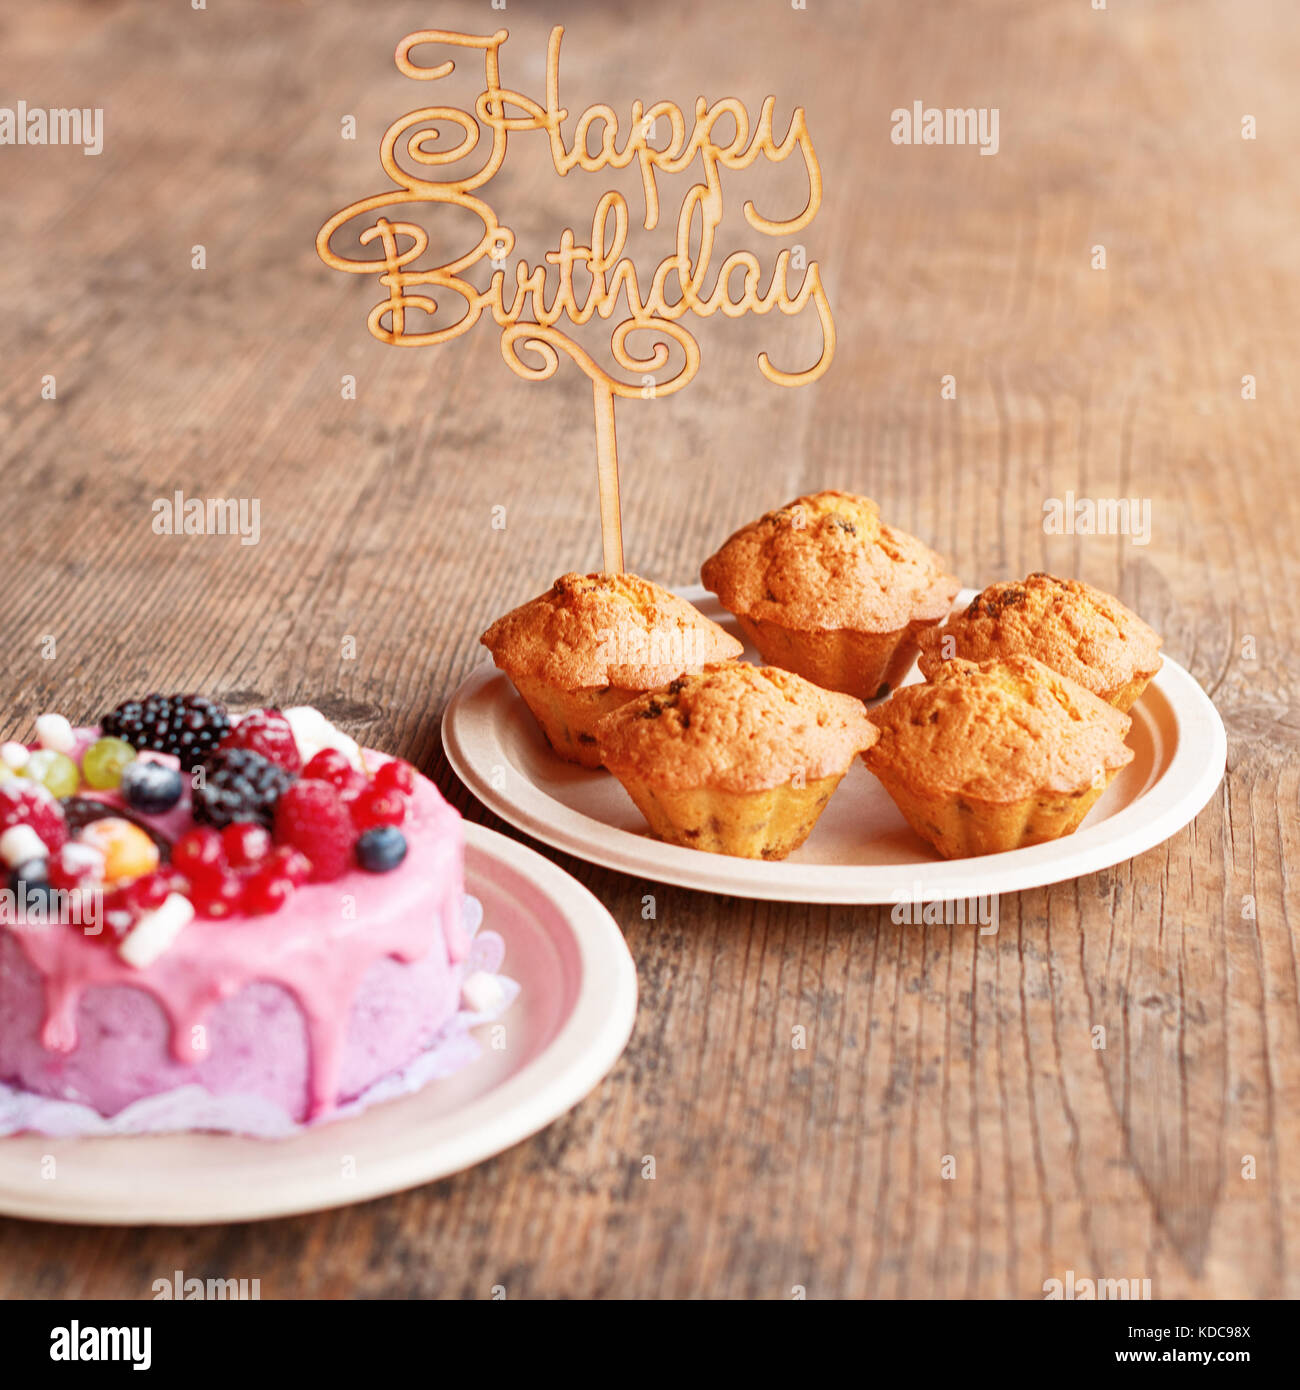 Birthday Cake And Muffins With Wooden Greeting Sign On Rustic Background Sing Letters Happy Holiday Sweets